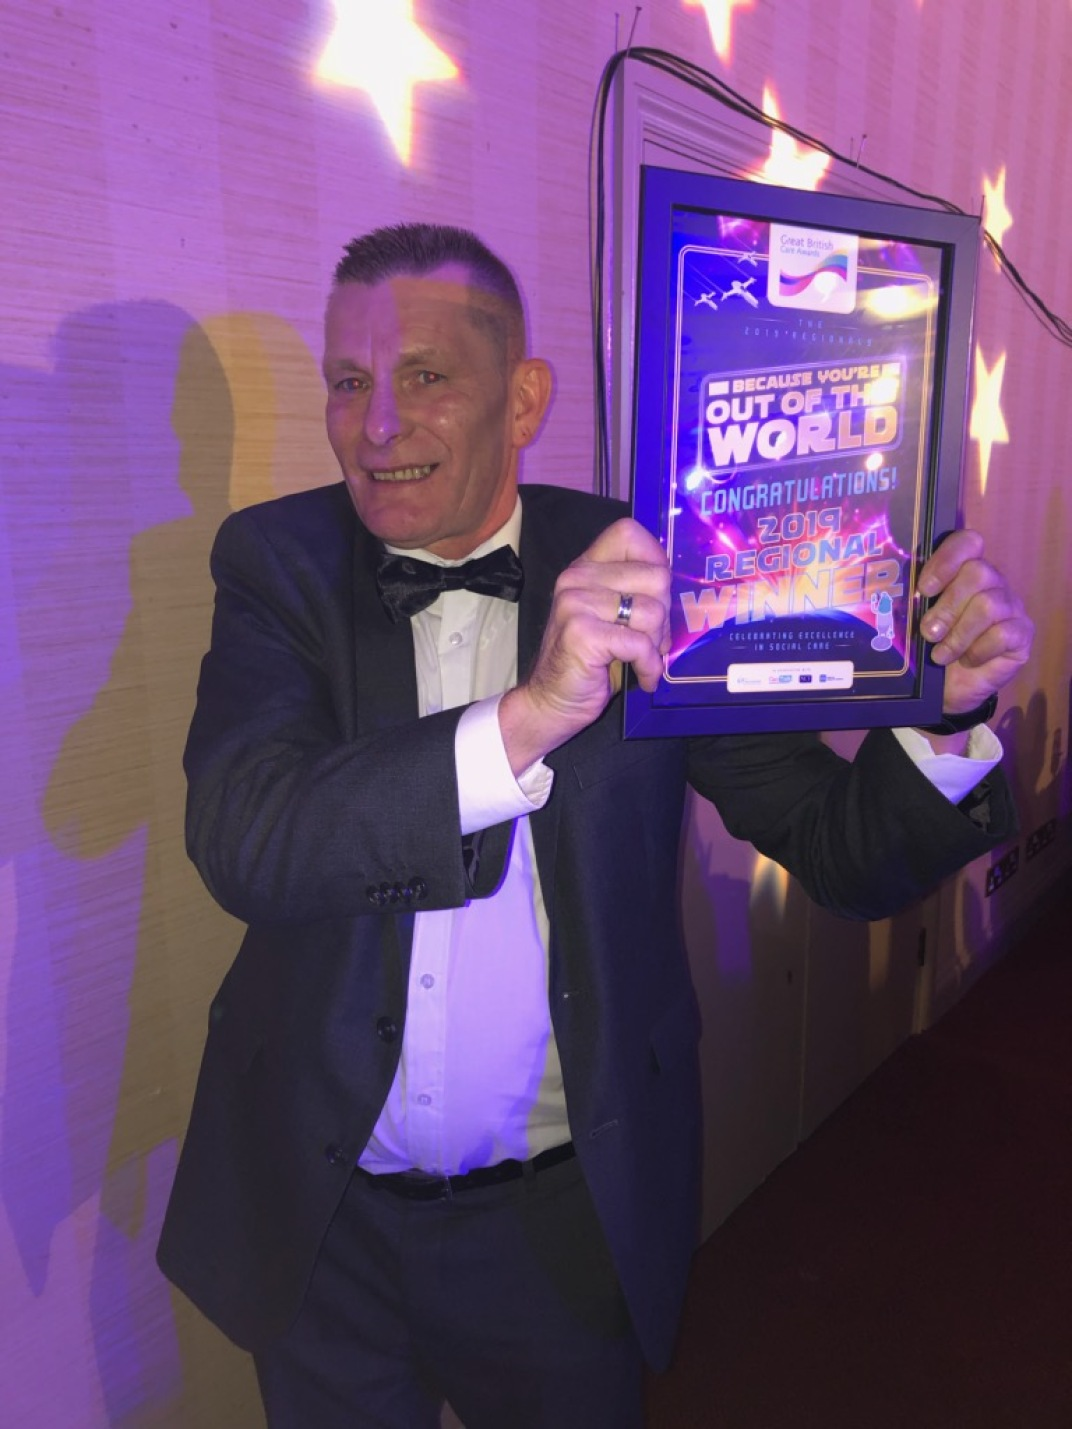 Billy celebrating with his award